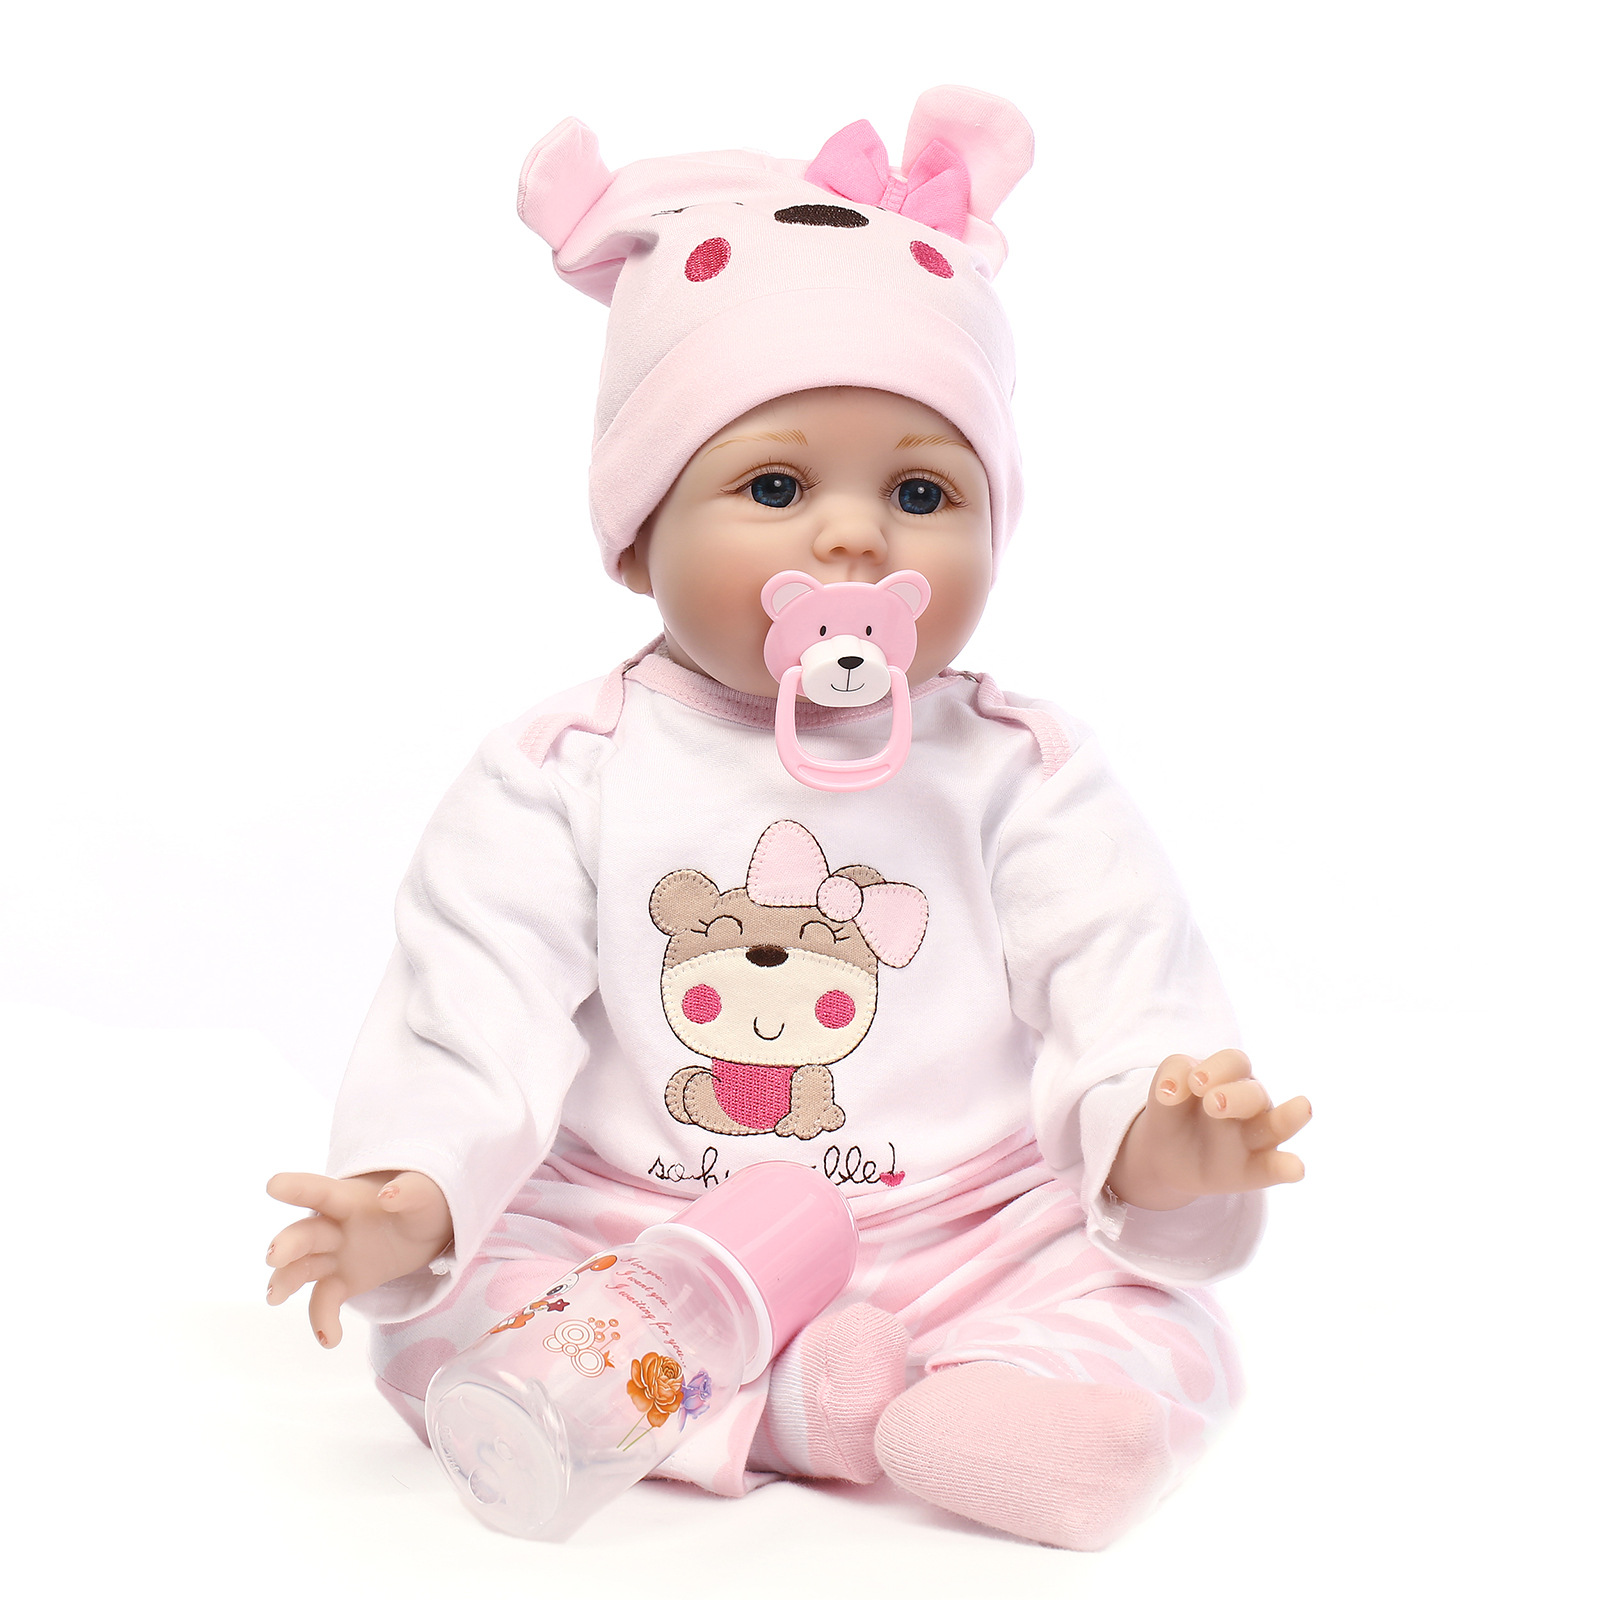 interactive reborn dolls Silicone Reborn Baby Doll Toys 21inch Vinyl <font><b>Princess</b></font> <font><b>Toddler</b></font> Babies Dolls Girls Birthday Gift Present image